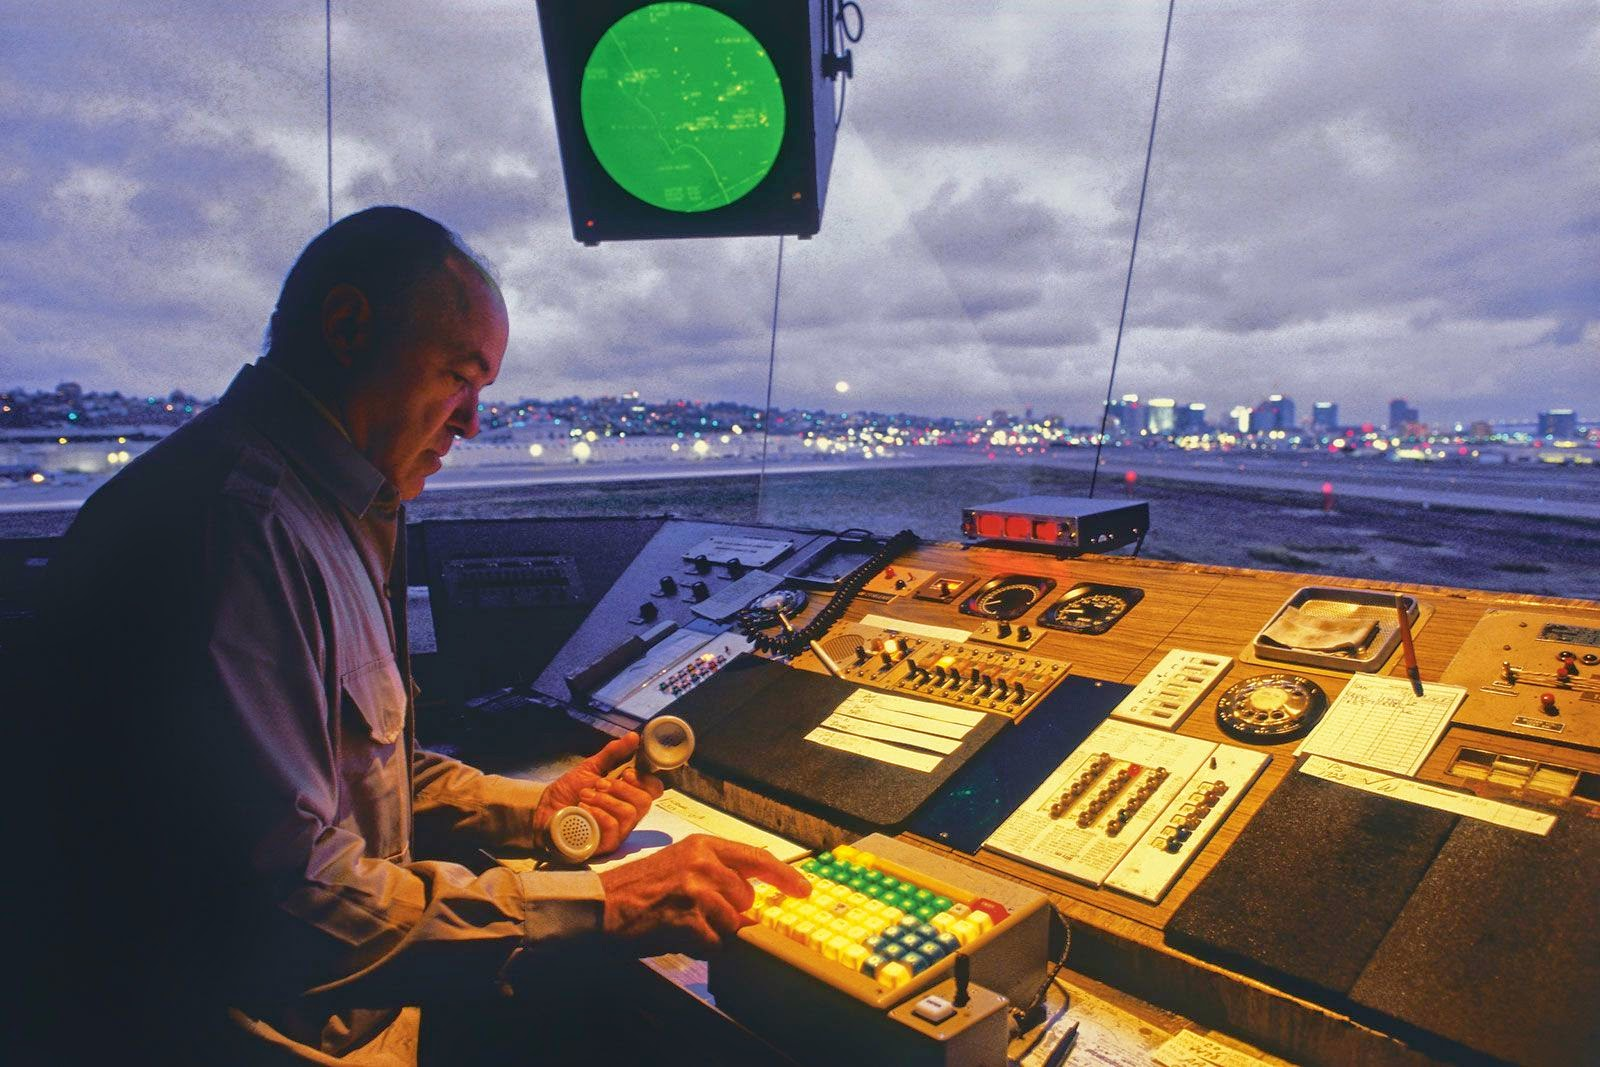 Air Traffic Control System Failure Caused By Memory